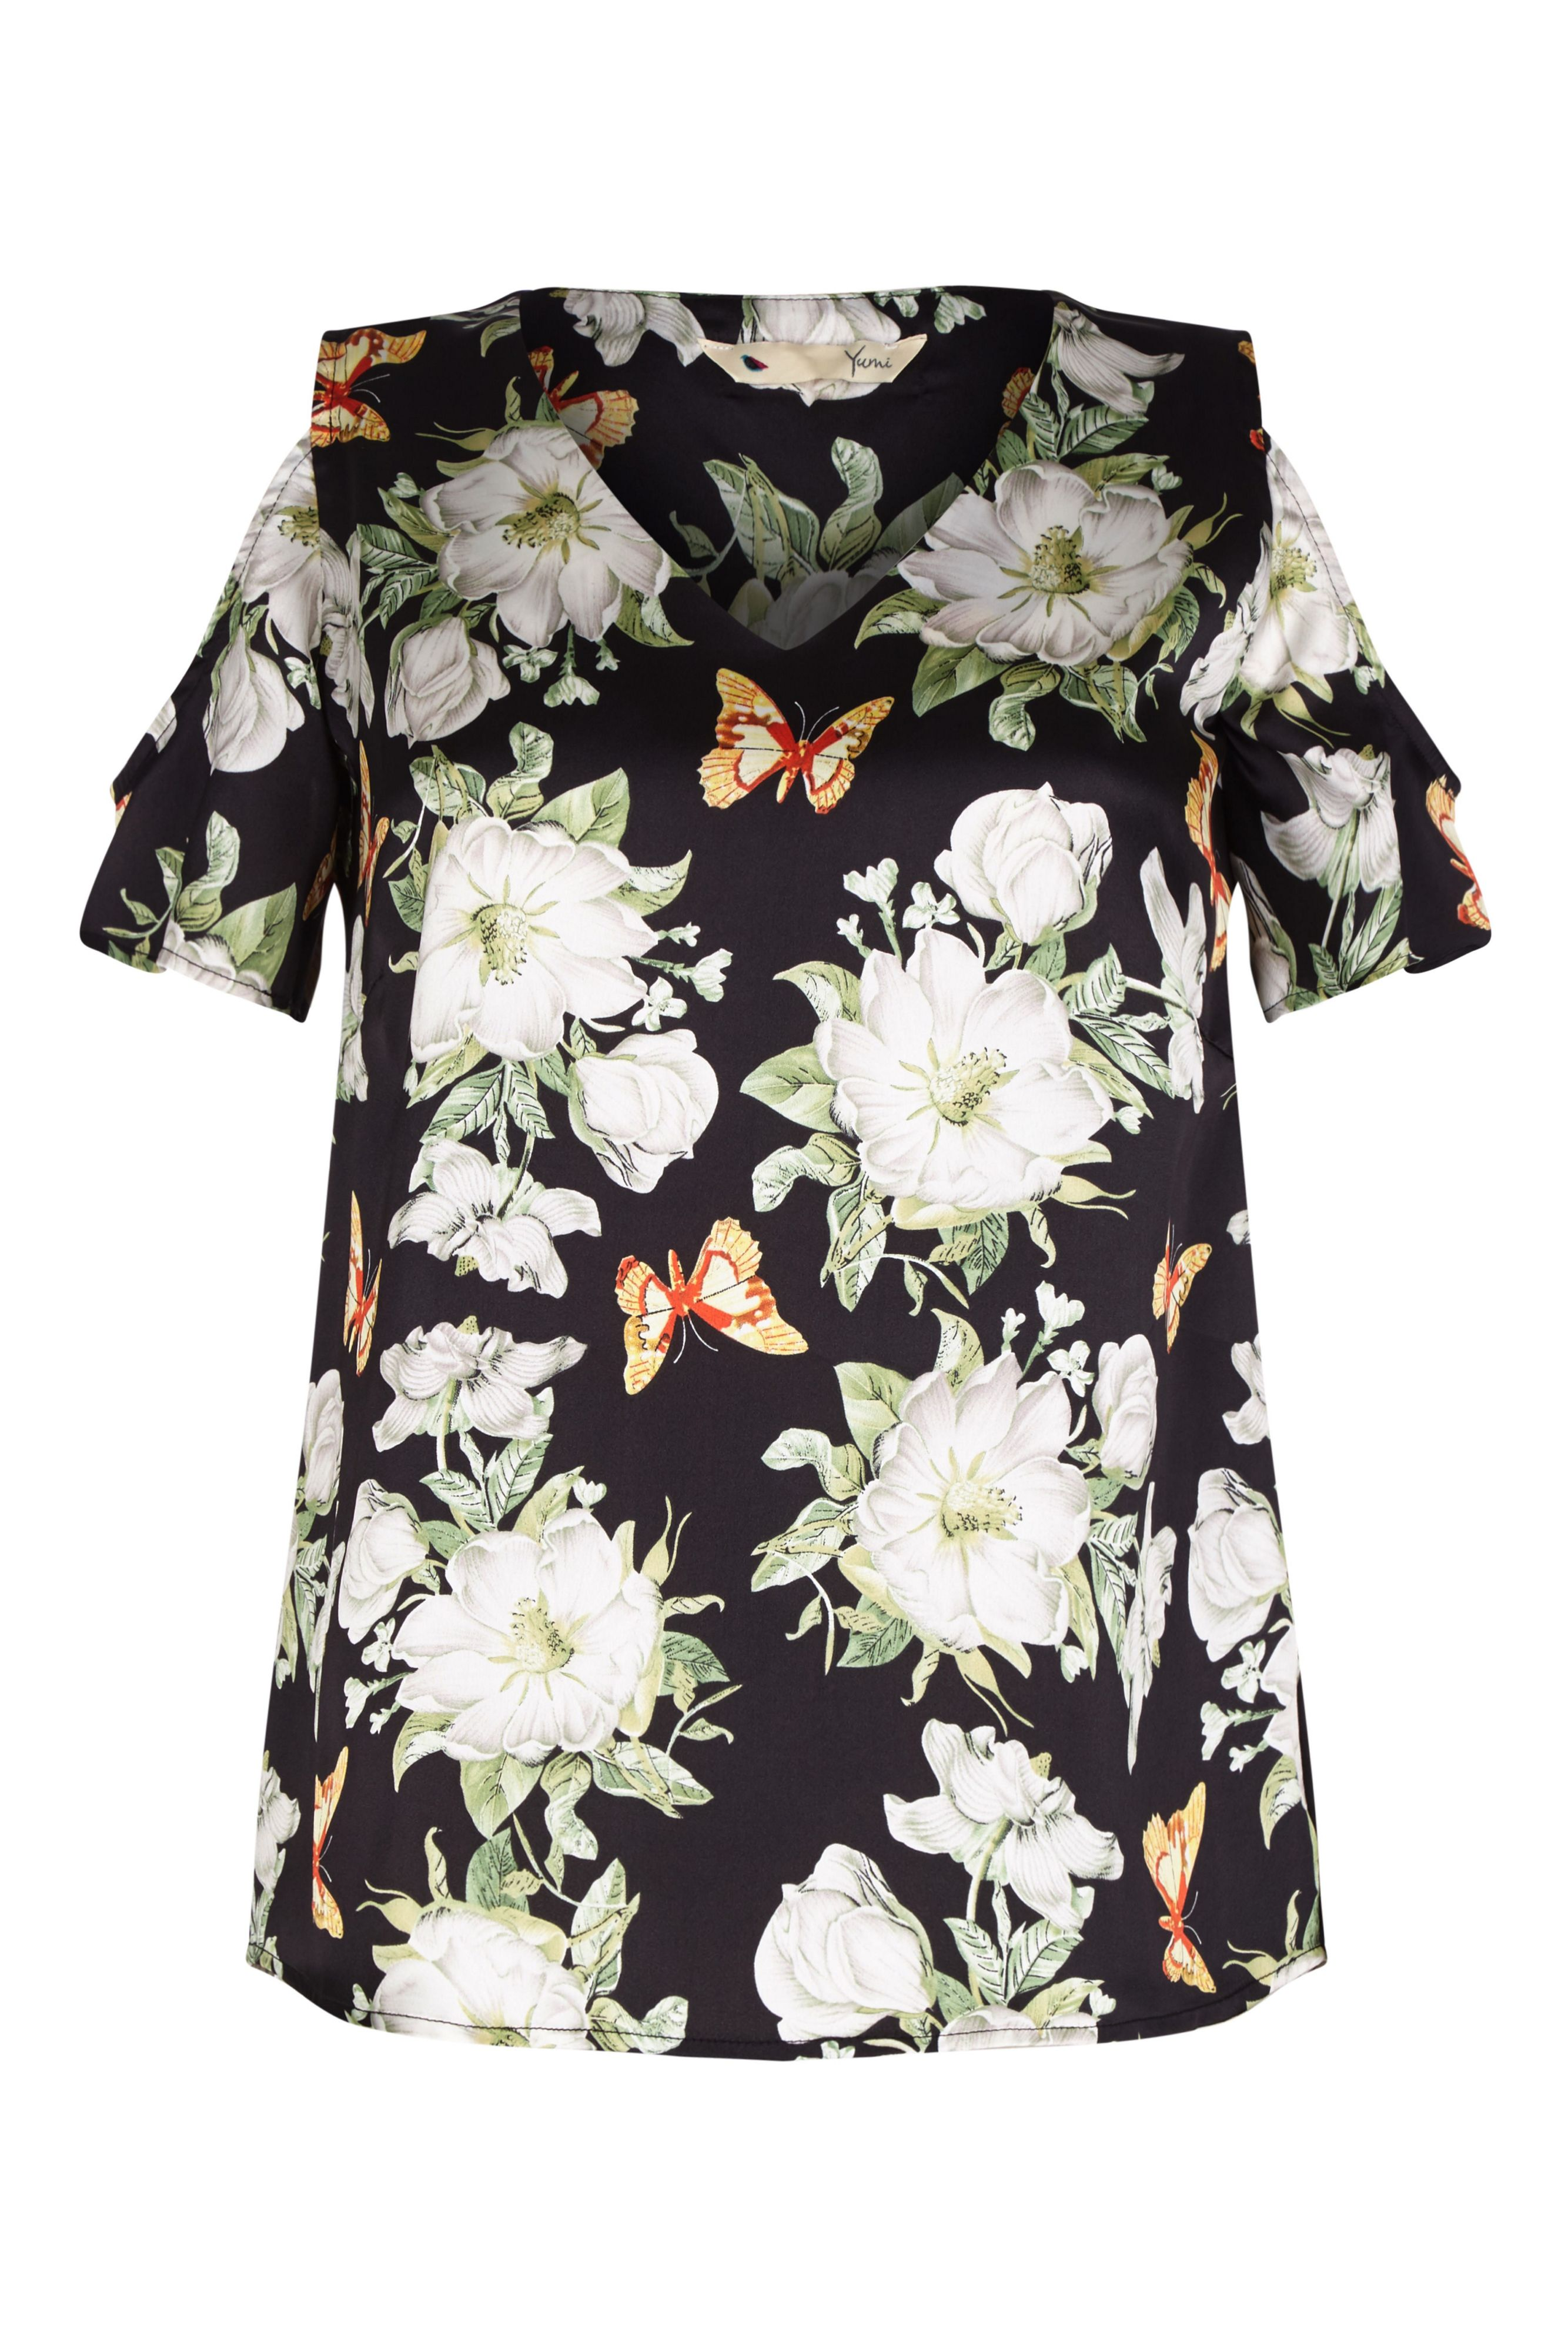 Yumi Curves Butterfly and Flower Print Top, Black